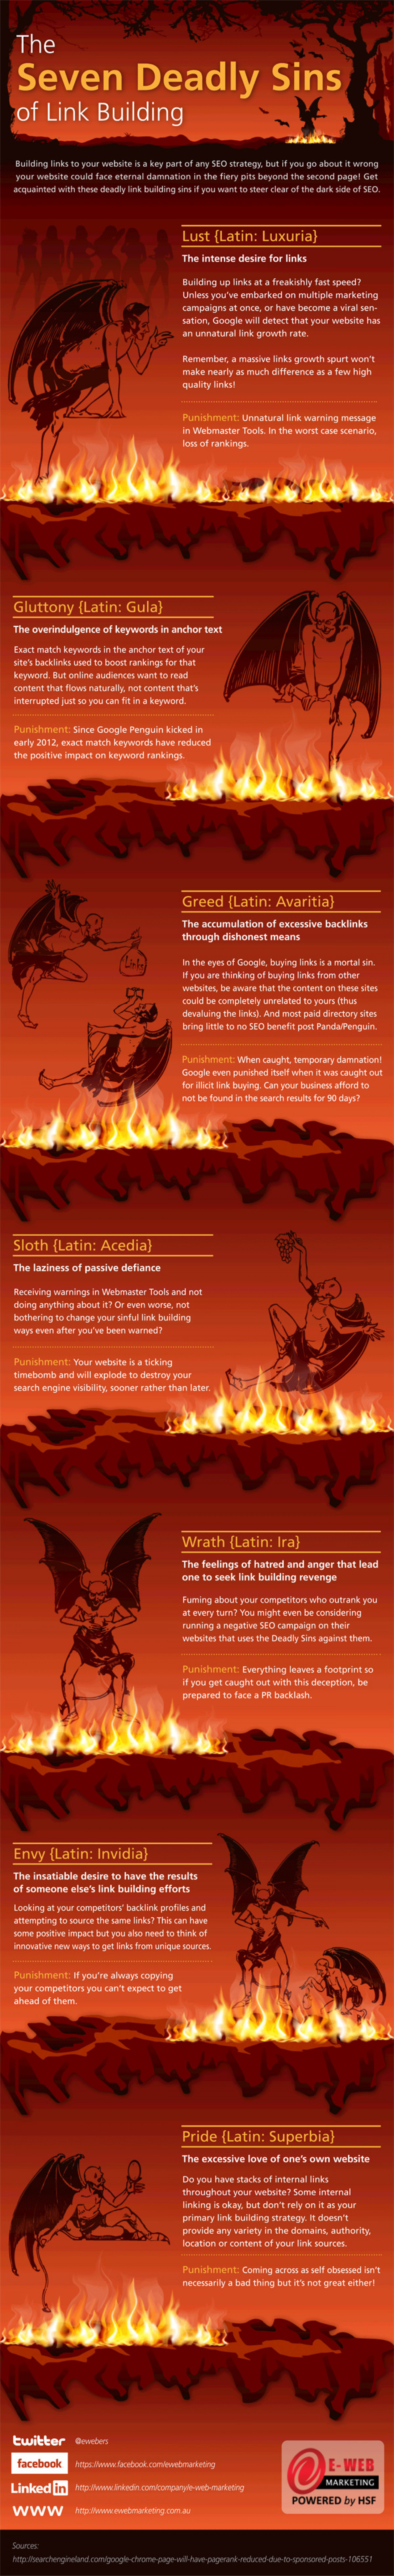 The Seven Deadly Sins of Link Building Infographic